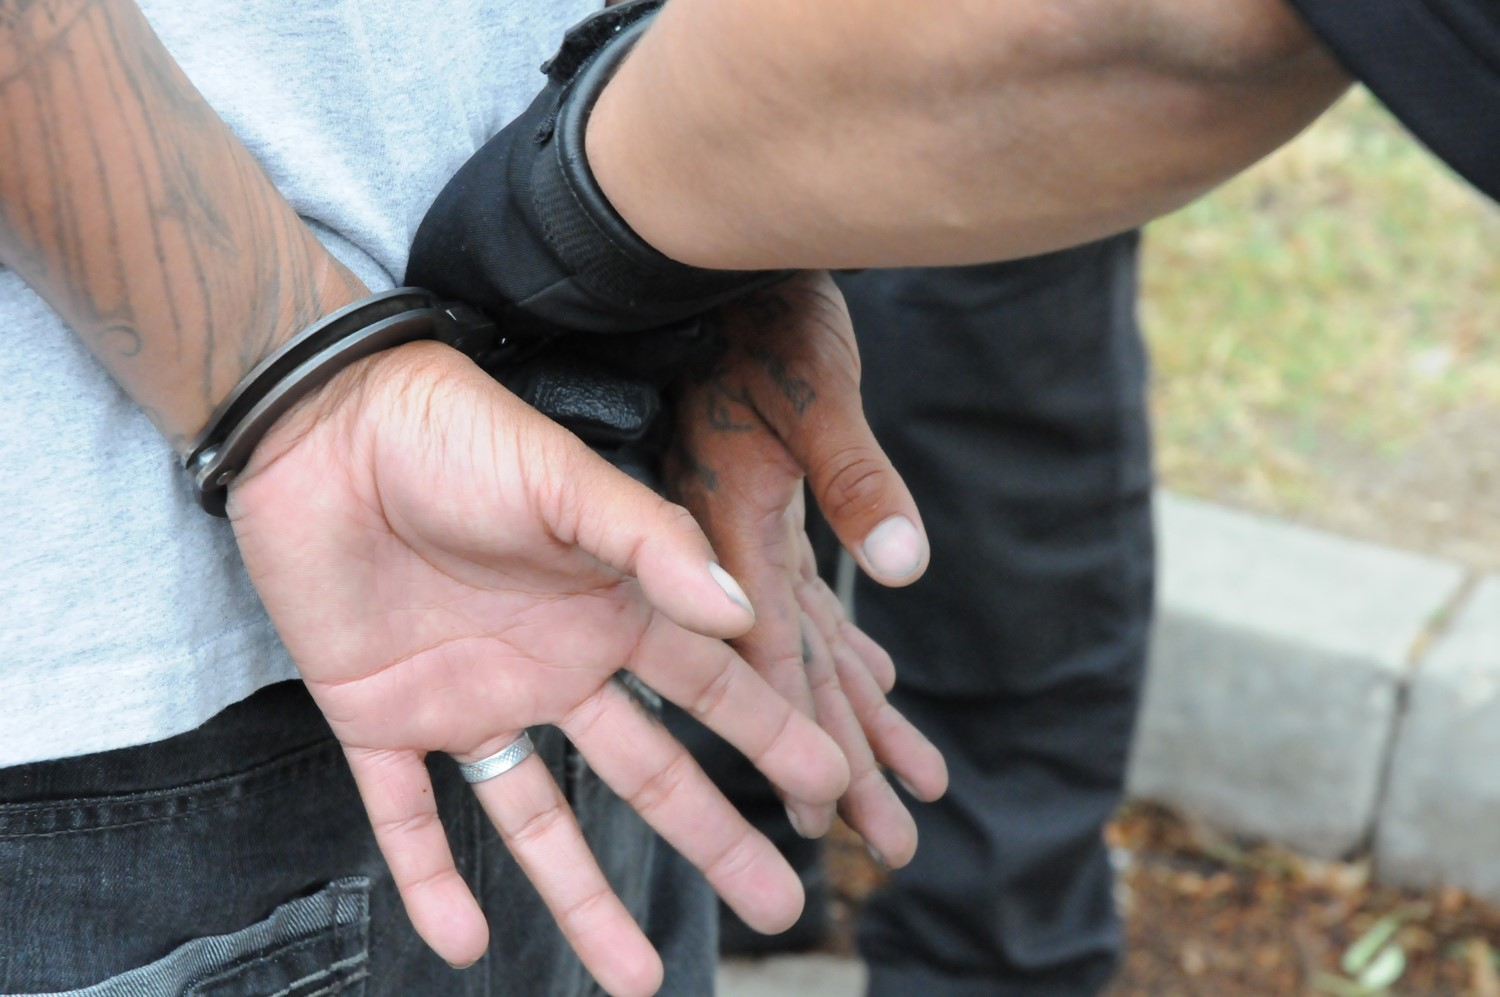 An officer puts handcuffs on a man.